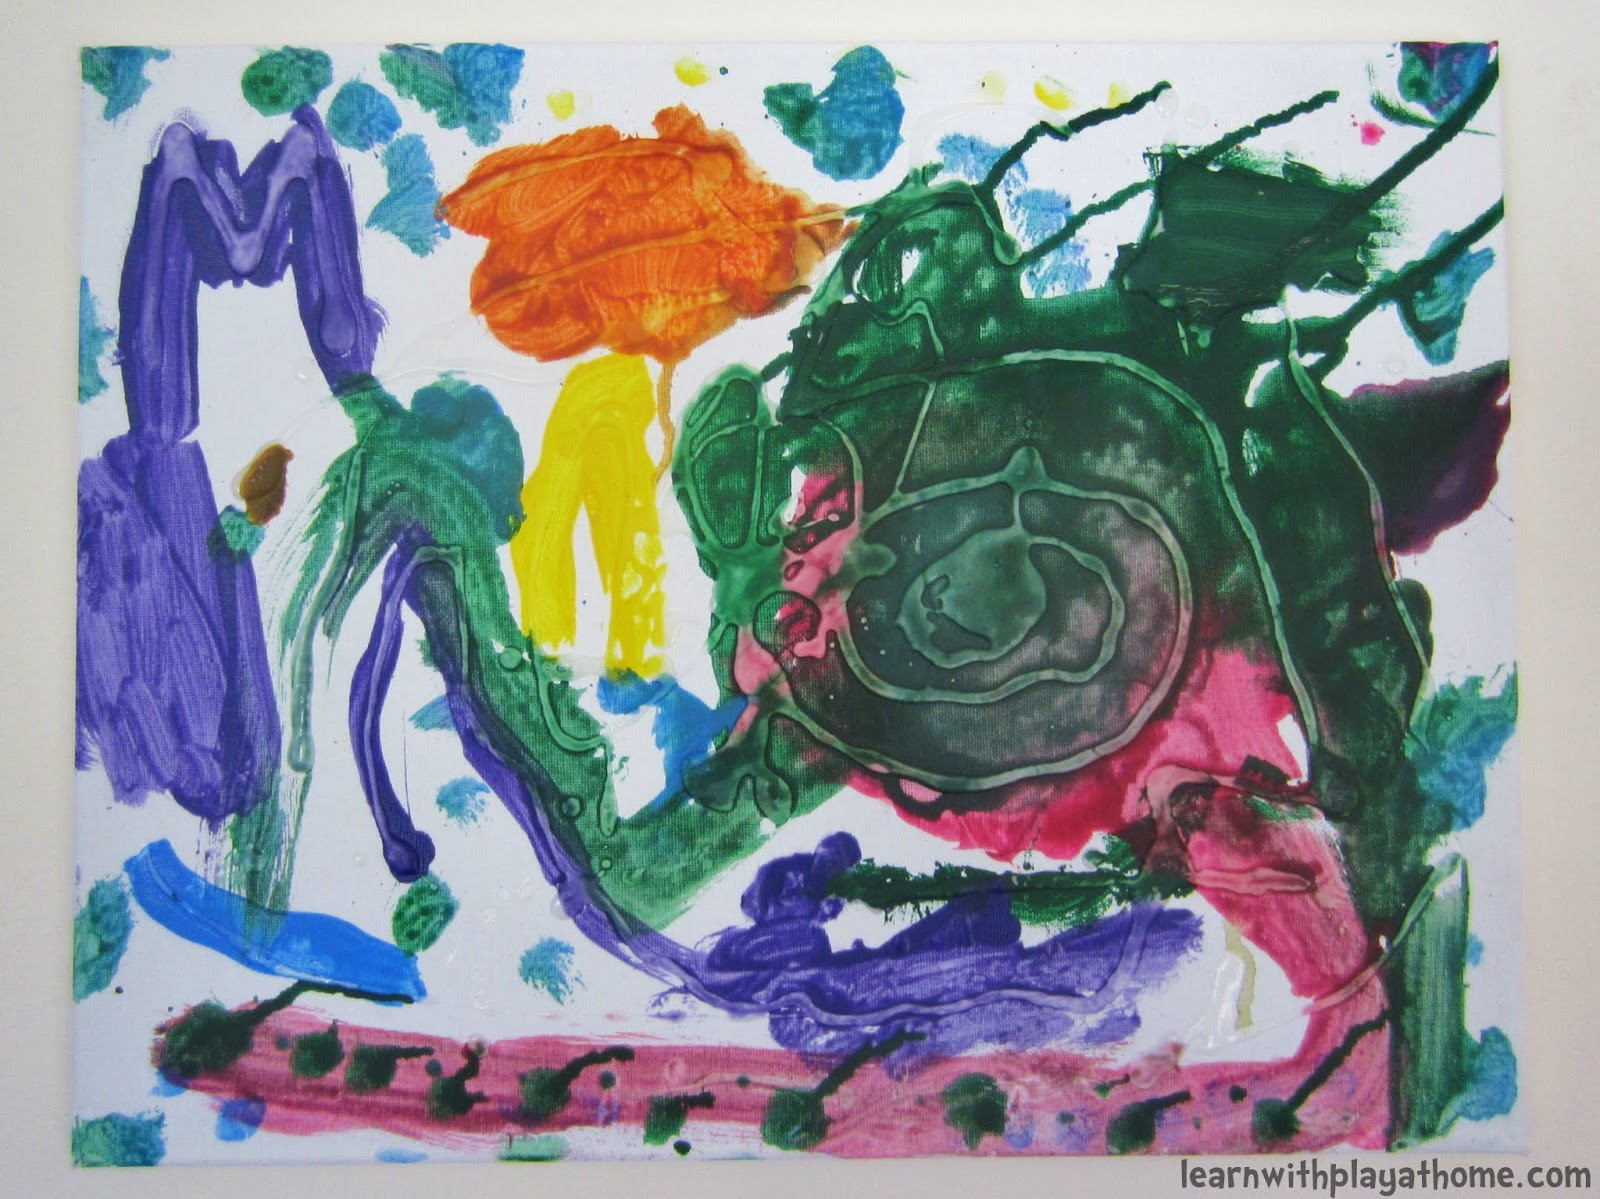 learn with play at home glue canvas kids art - Pictures Of Kids Painting